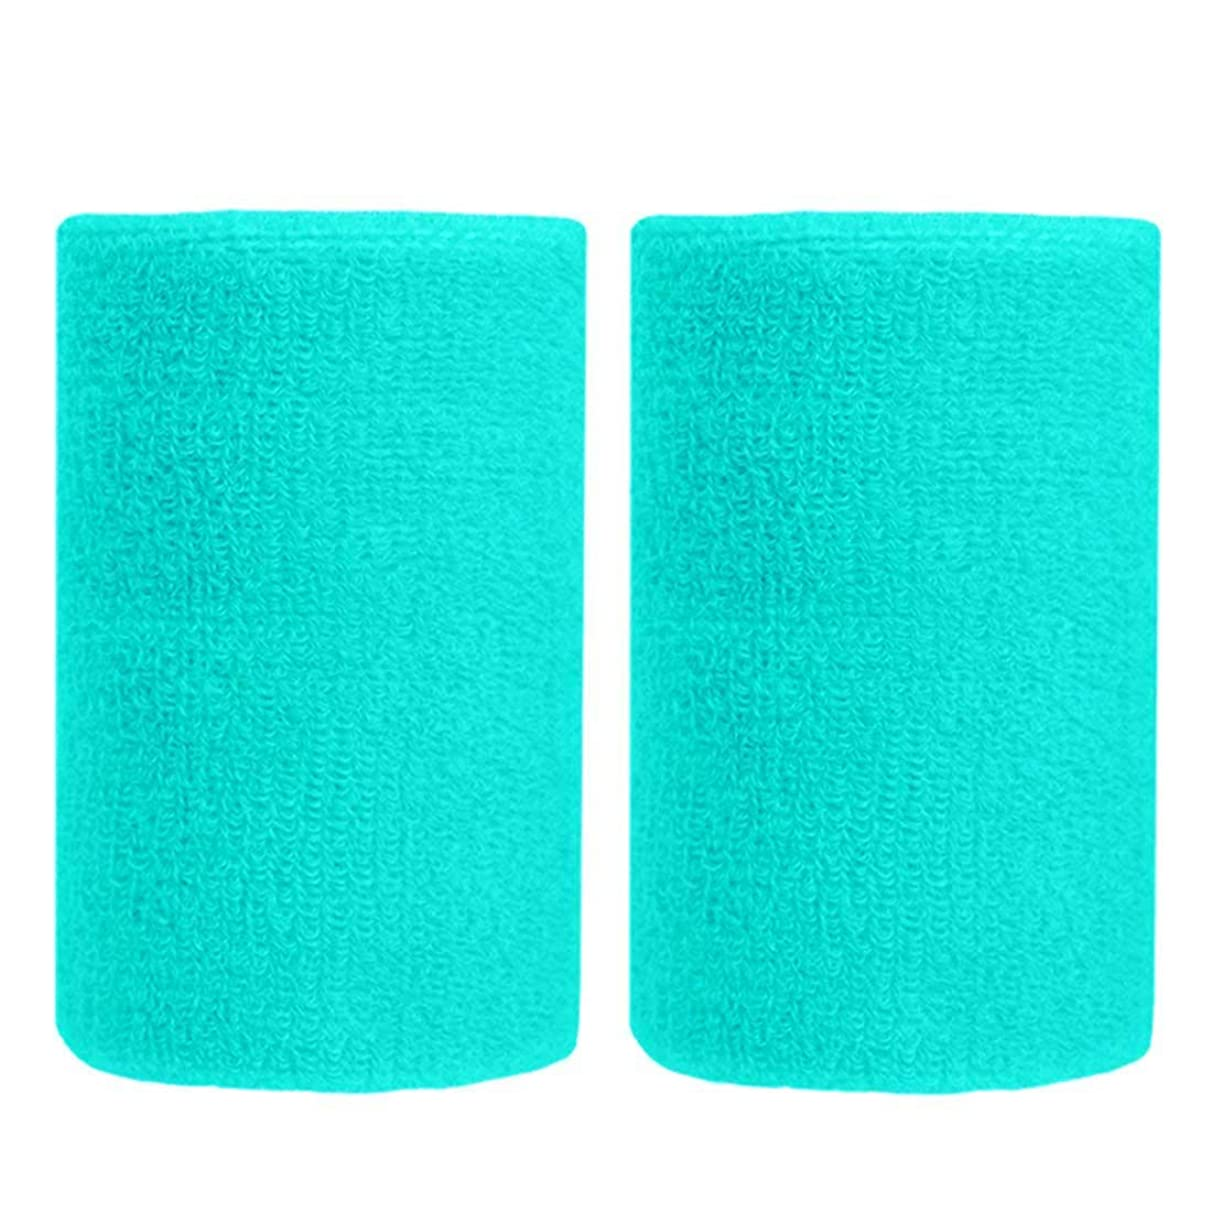 BBOLIVE 4' Inch Wrist Sweatband in 28 Different Neon Colors - Athletic Cotton Terry Cloth - Great for All Outdoor Activity(1 Pair)